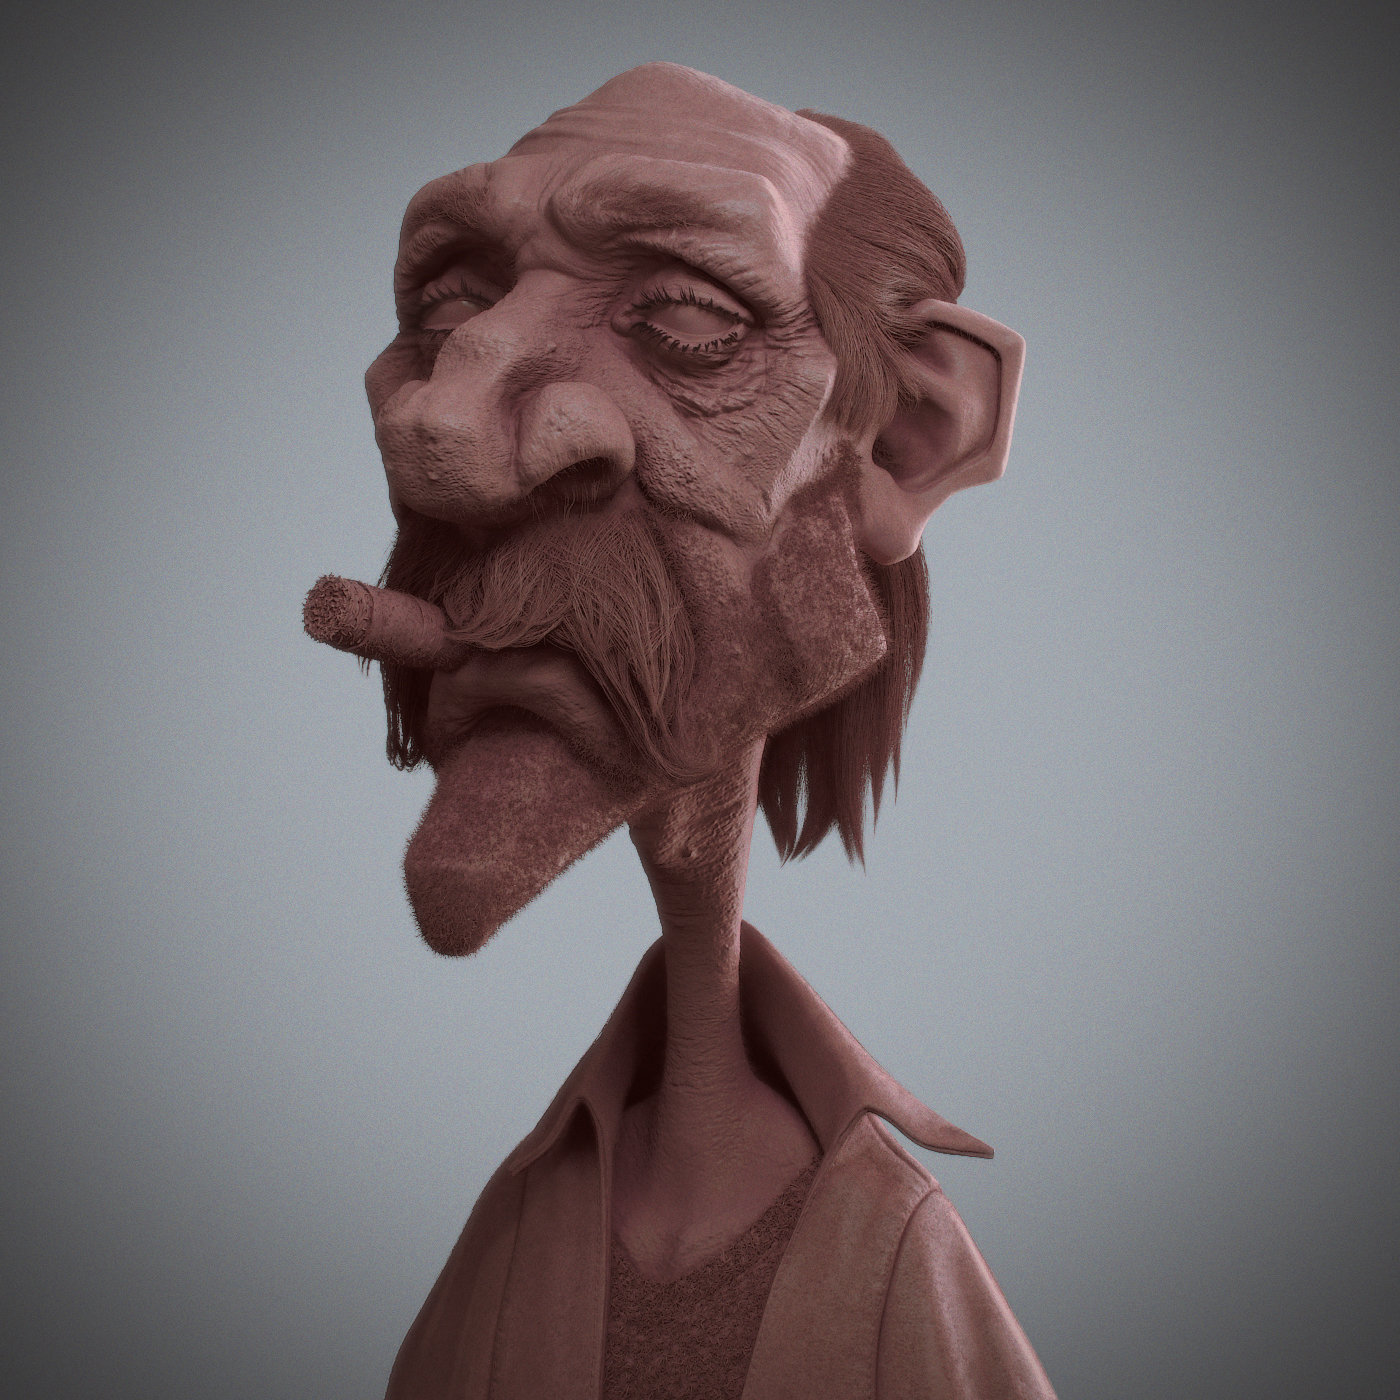 Antone magdy getting old clay